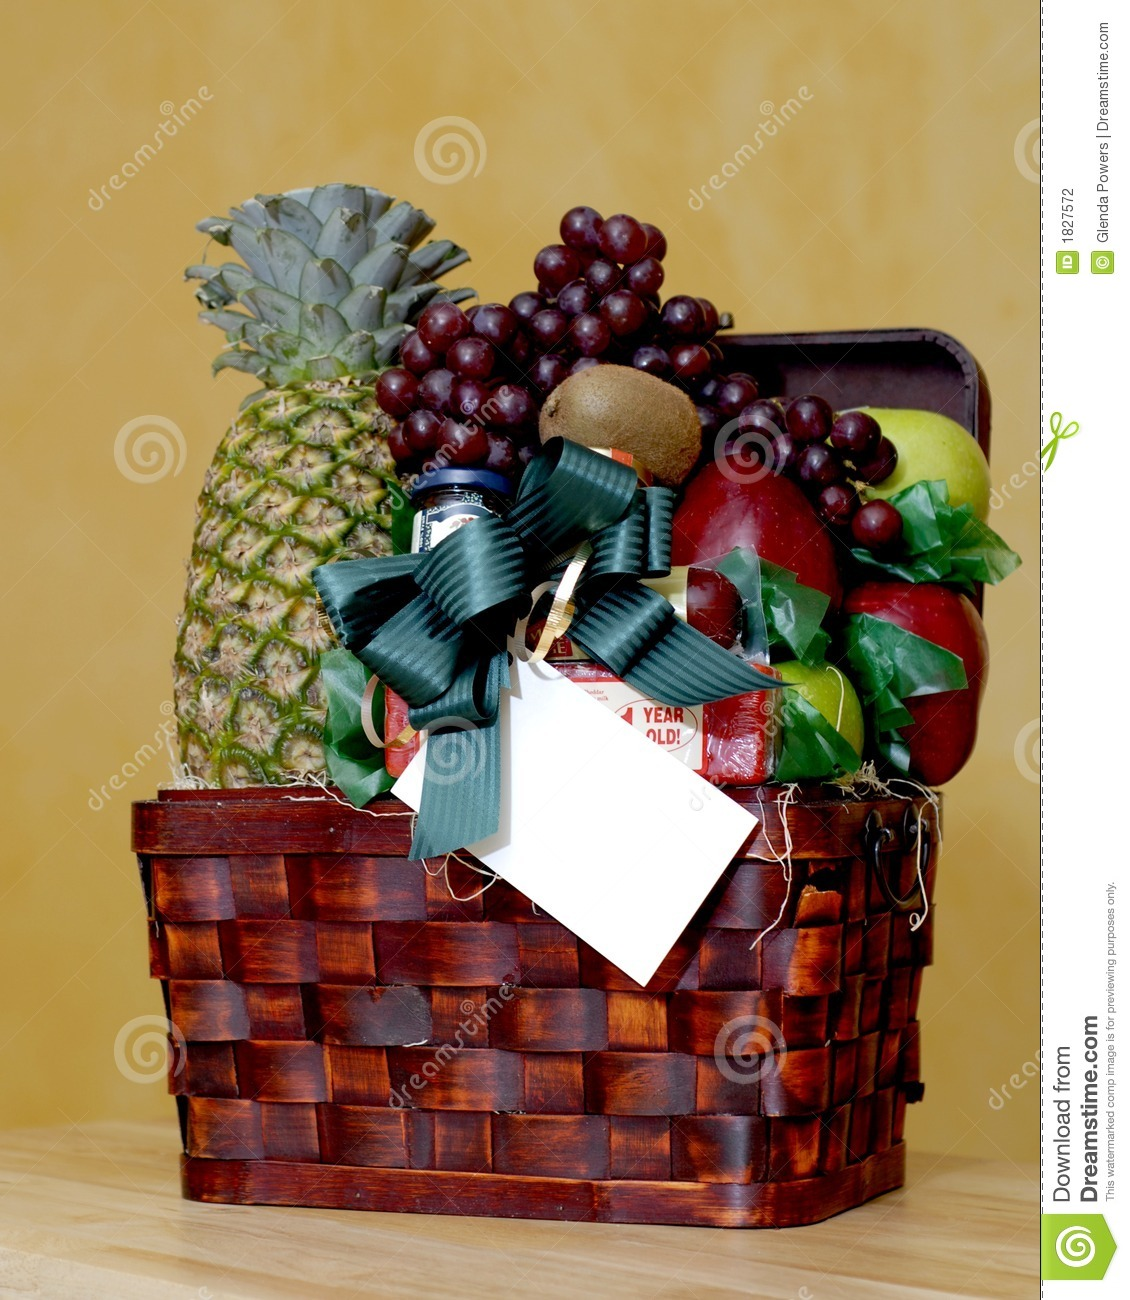 Fruit Basket With Gift Card Stock Photo Image Of Grapes Apples